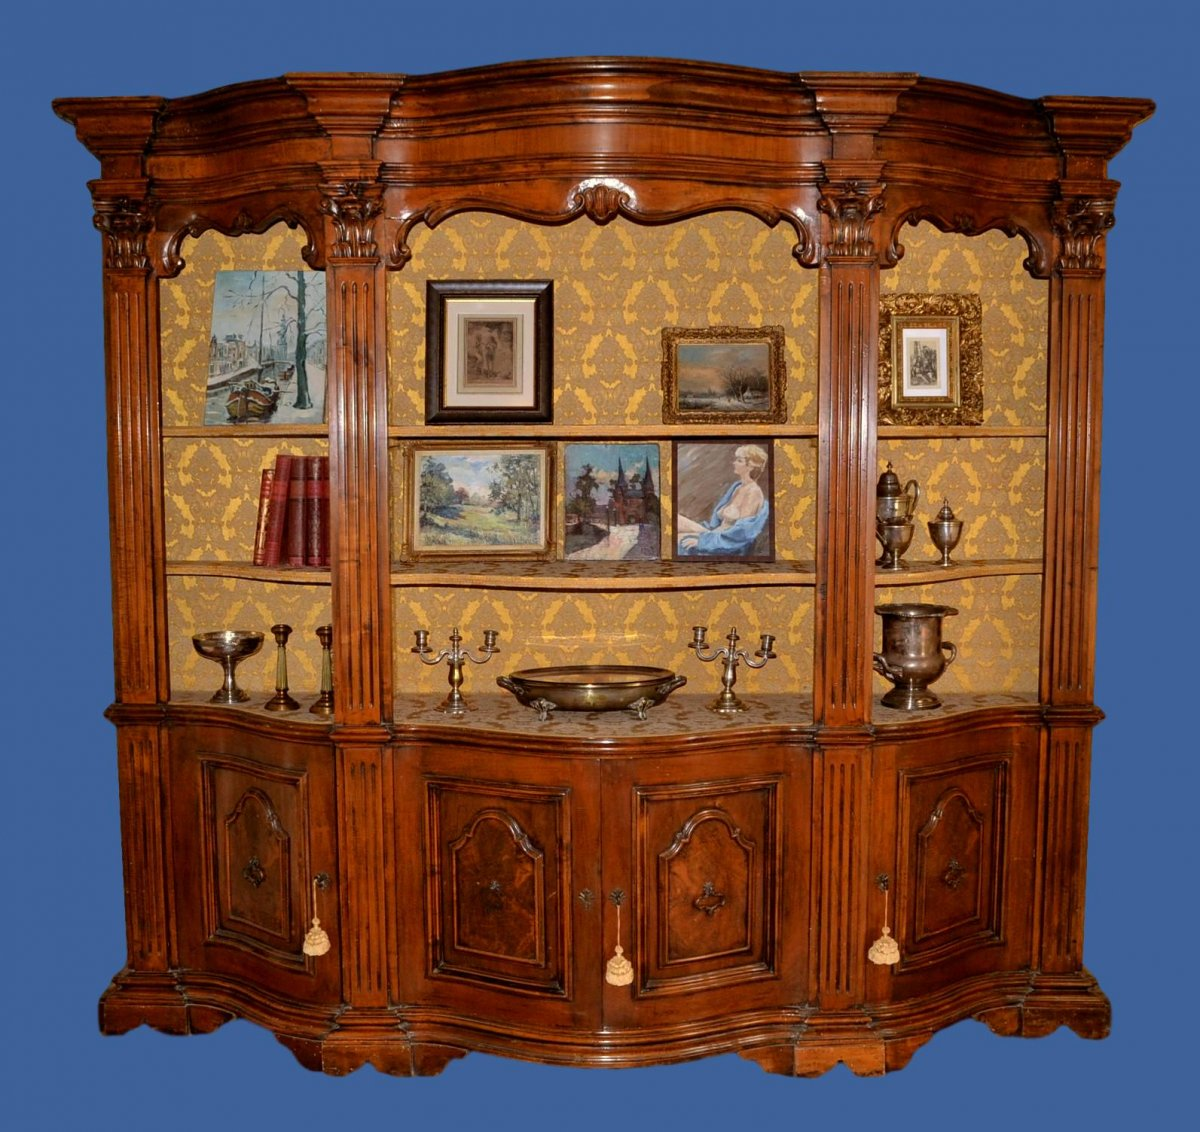 Large wooden sculptured natural wooden bookcase, four pillars; six shelves in facade covered, as well as funds, velvet of Genoa in very good condition. Opening with four doors in the lower part, closed by old locks, shelves inside. The assembly consists of three distinct parts assembled by lag bolts. Louis XV style, spectacular ensemble, circa 1950.<br /> <br /> Certificate of authenticity&nbsp;Height: 234 cm, width: 260 cm, depth: 60 cm.